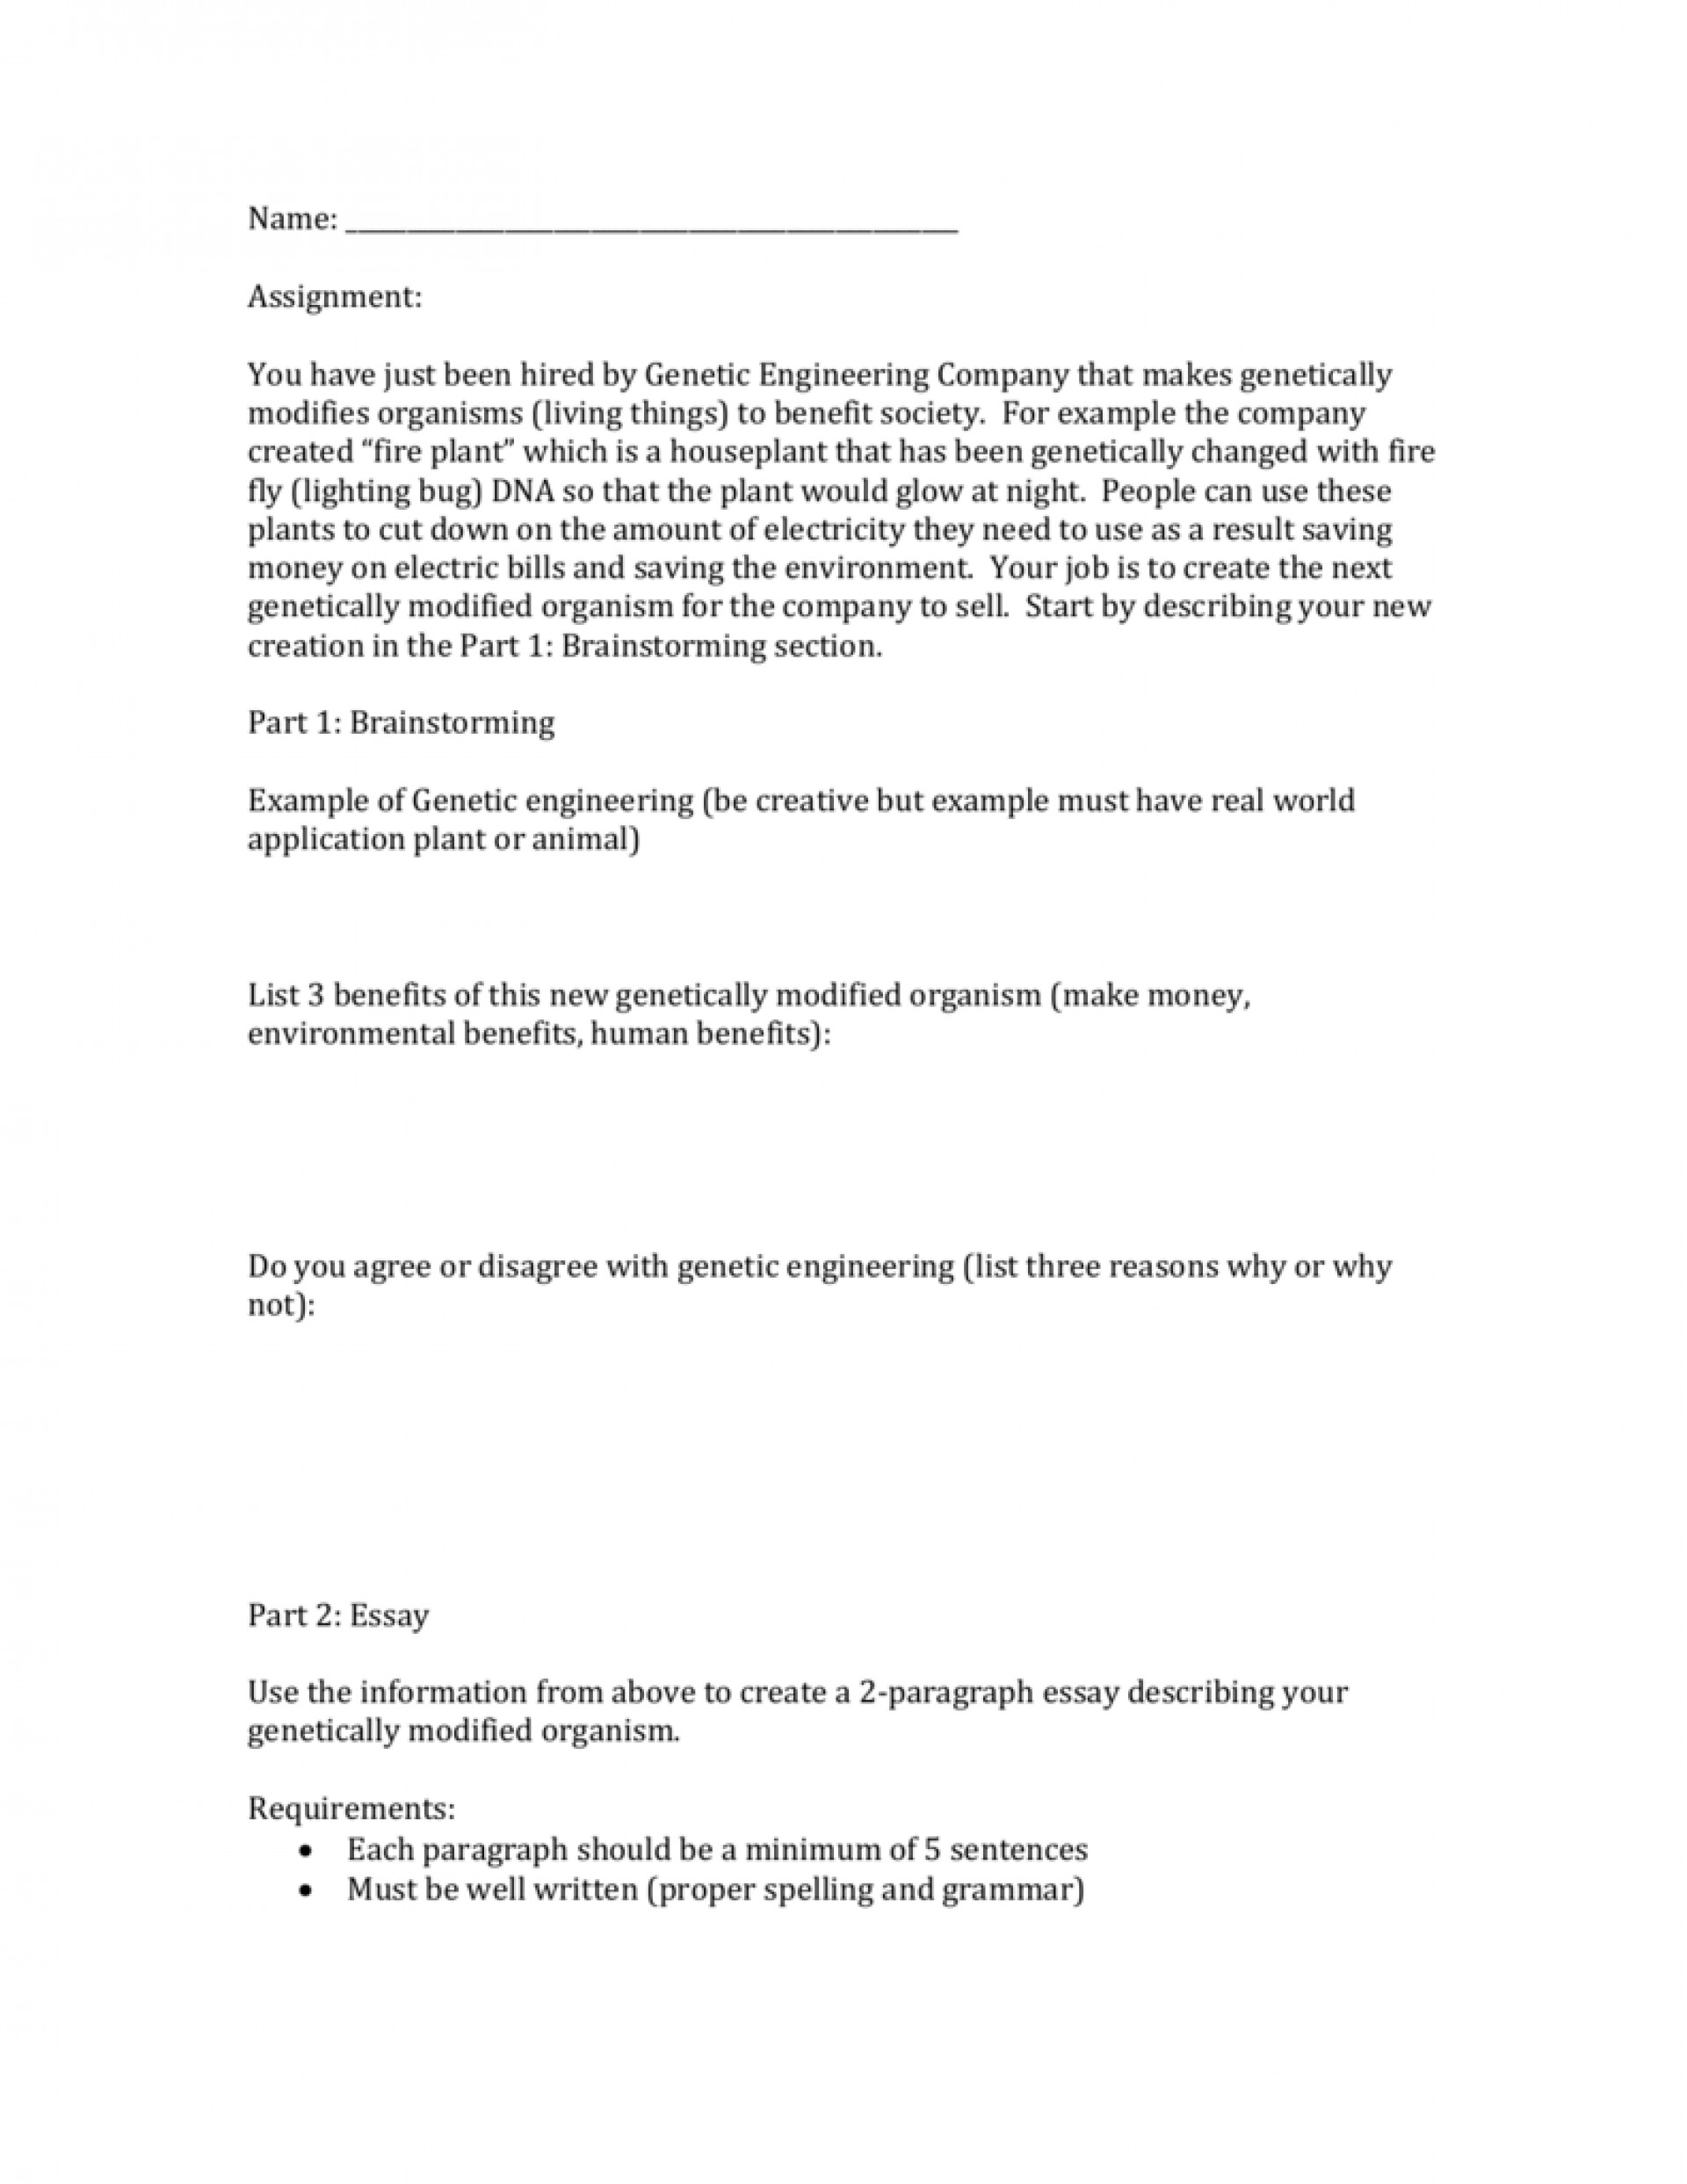 006 009591371 1 Essay Example About Genetic Striking Engineering Disadvantages Of Argumentative On Human Persuasive 1920